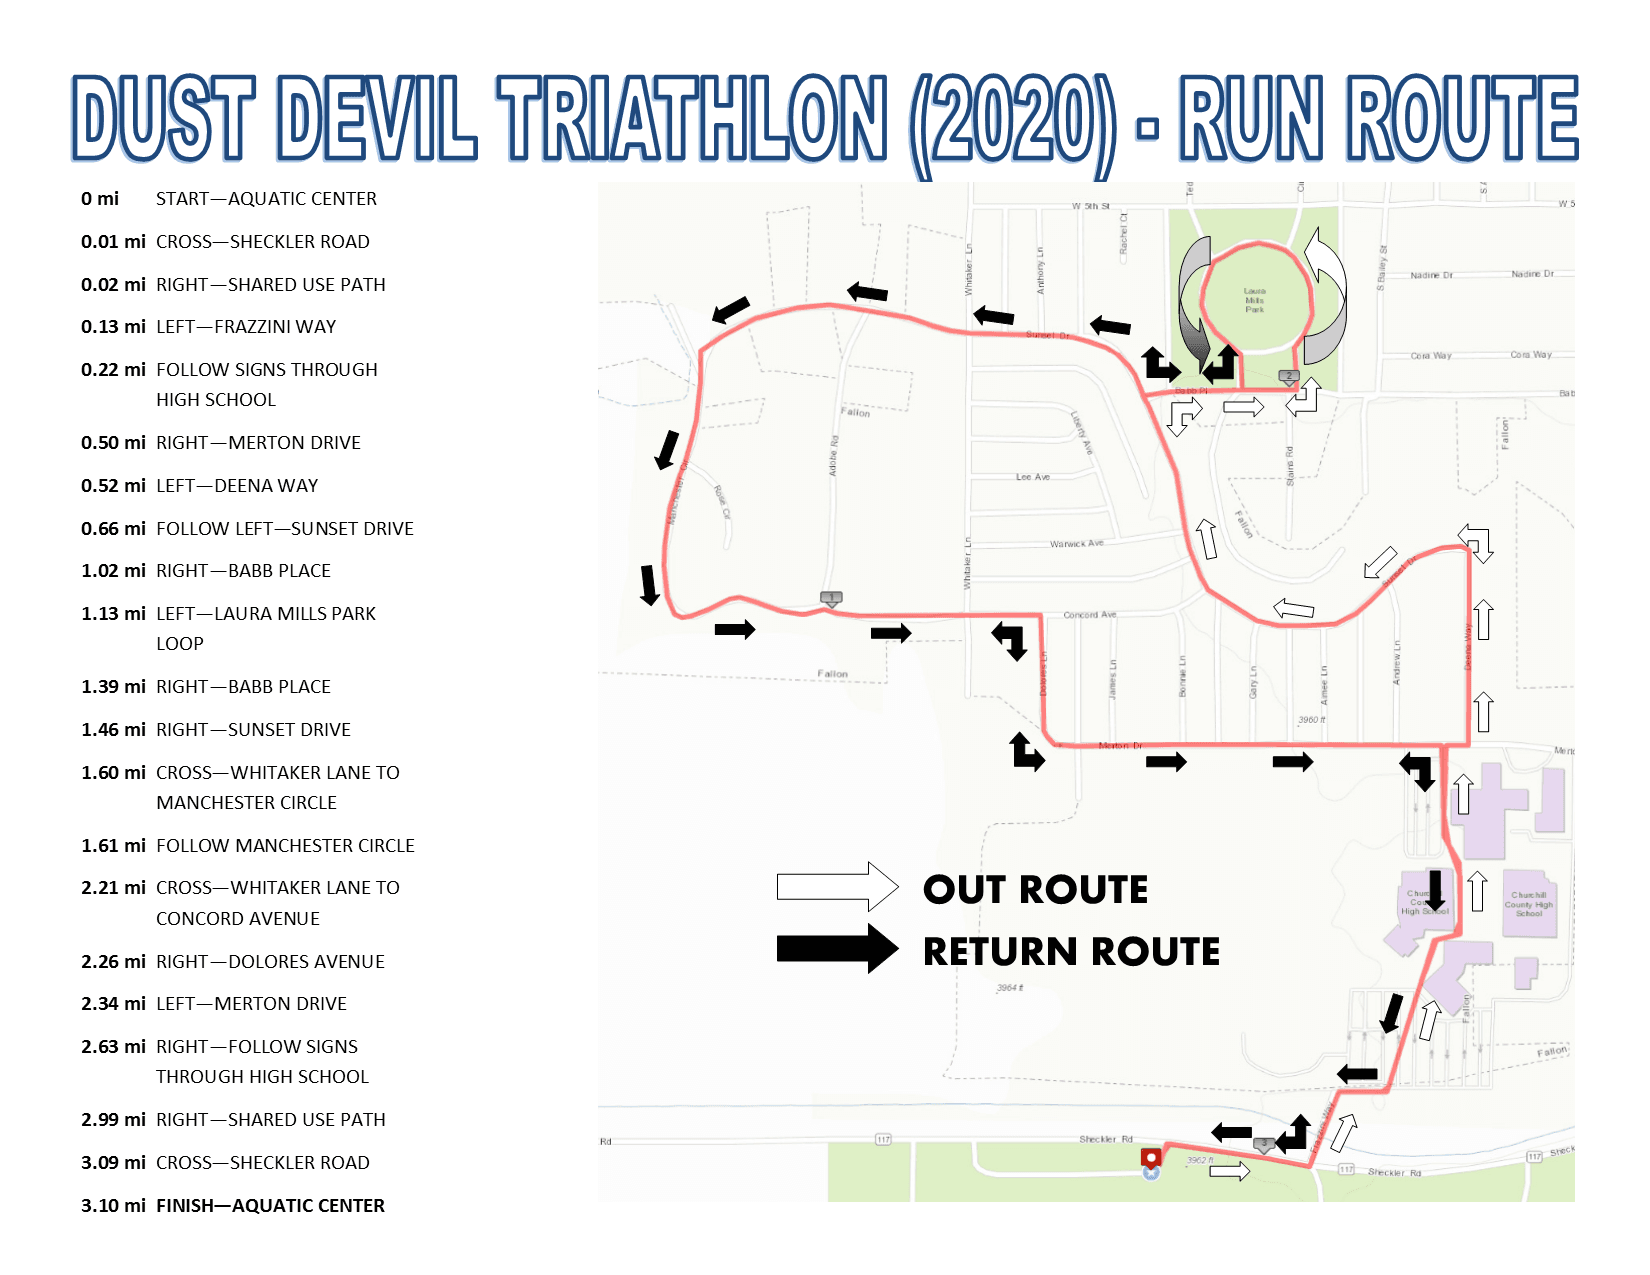 Dust Devil Triathlon (2020) - Run Route Course Map